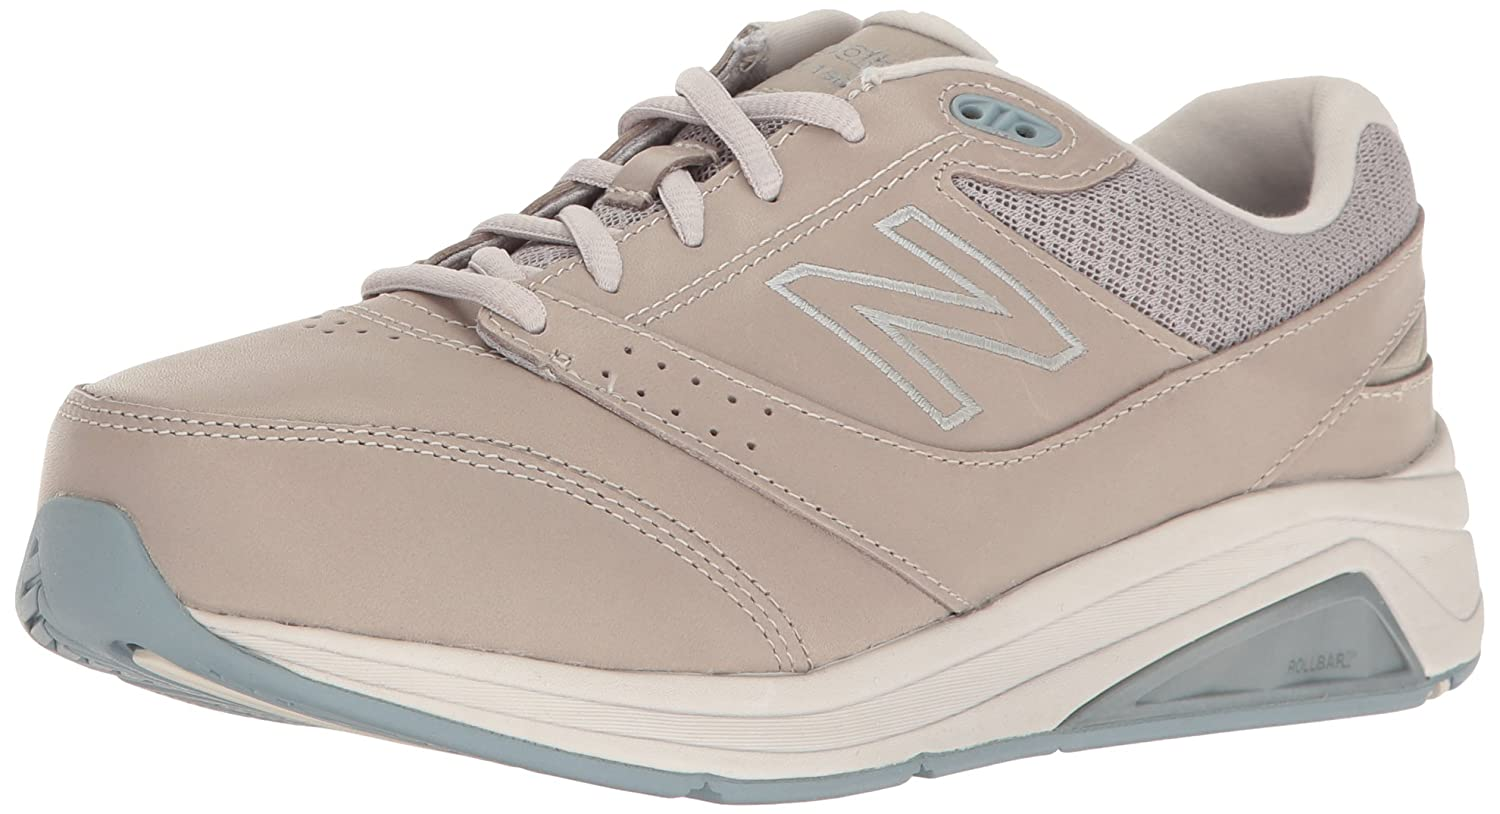 New Balance Women's Womens 928v3 Walking Shoe Walking Shoe B01MQLSM2D 5.5 2E US|Grey